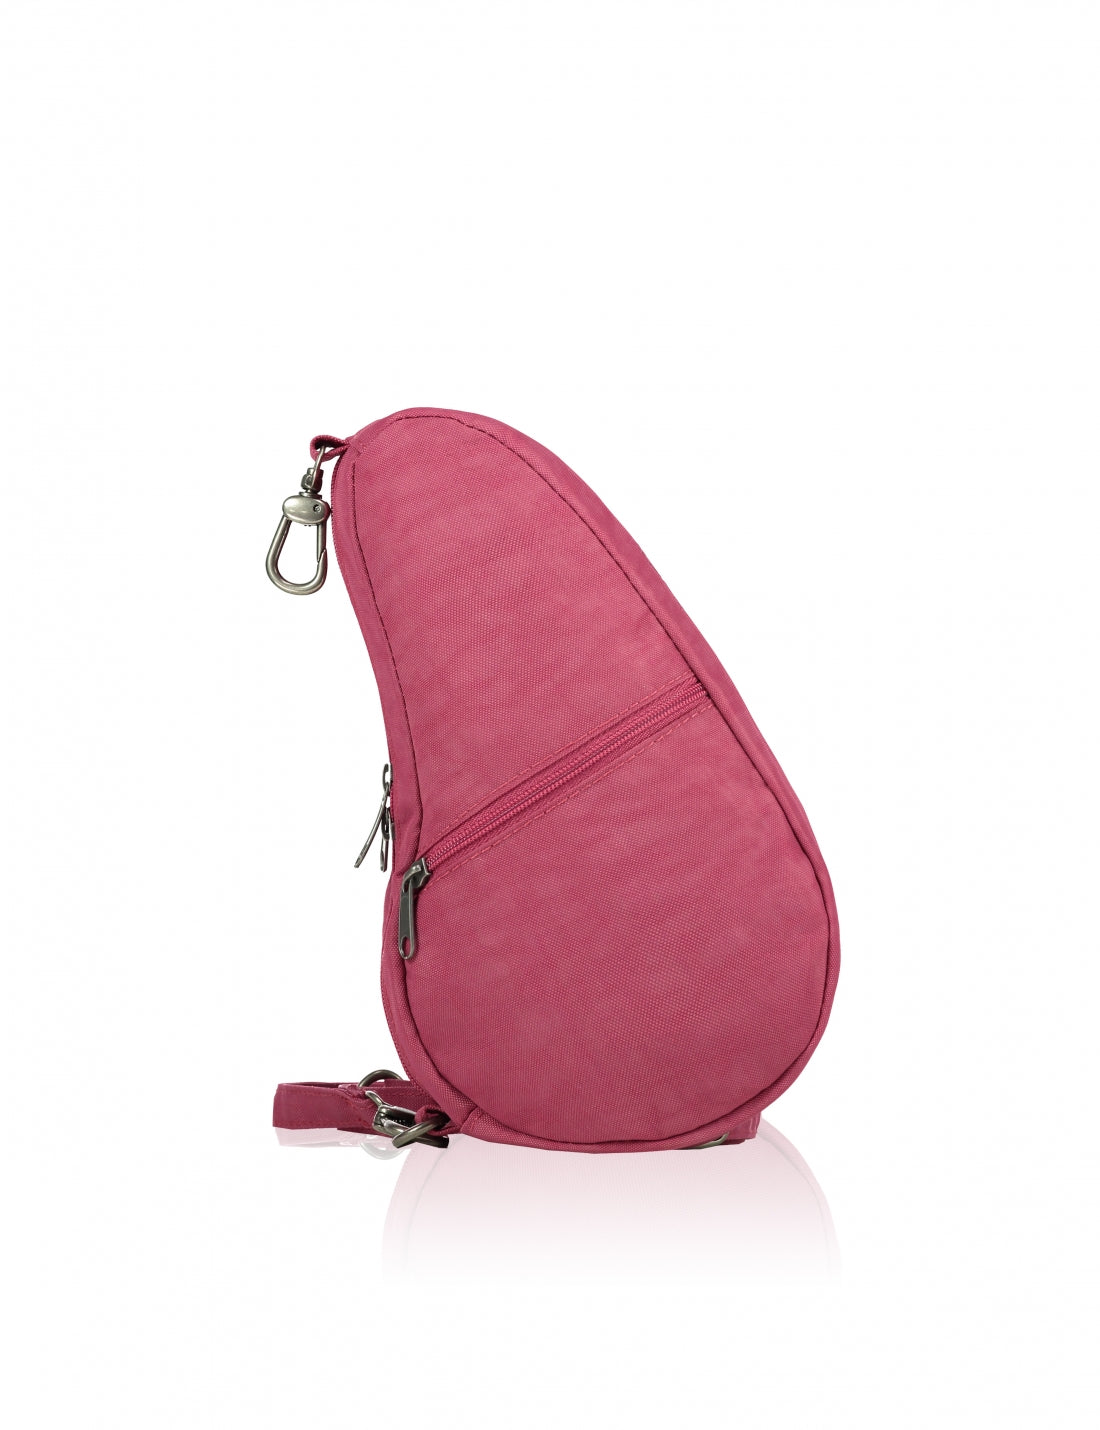 Healthy Back Bag Nylon Baglett in Cranberry